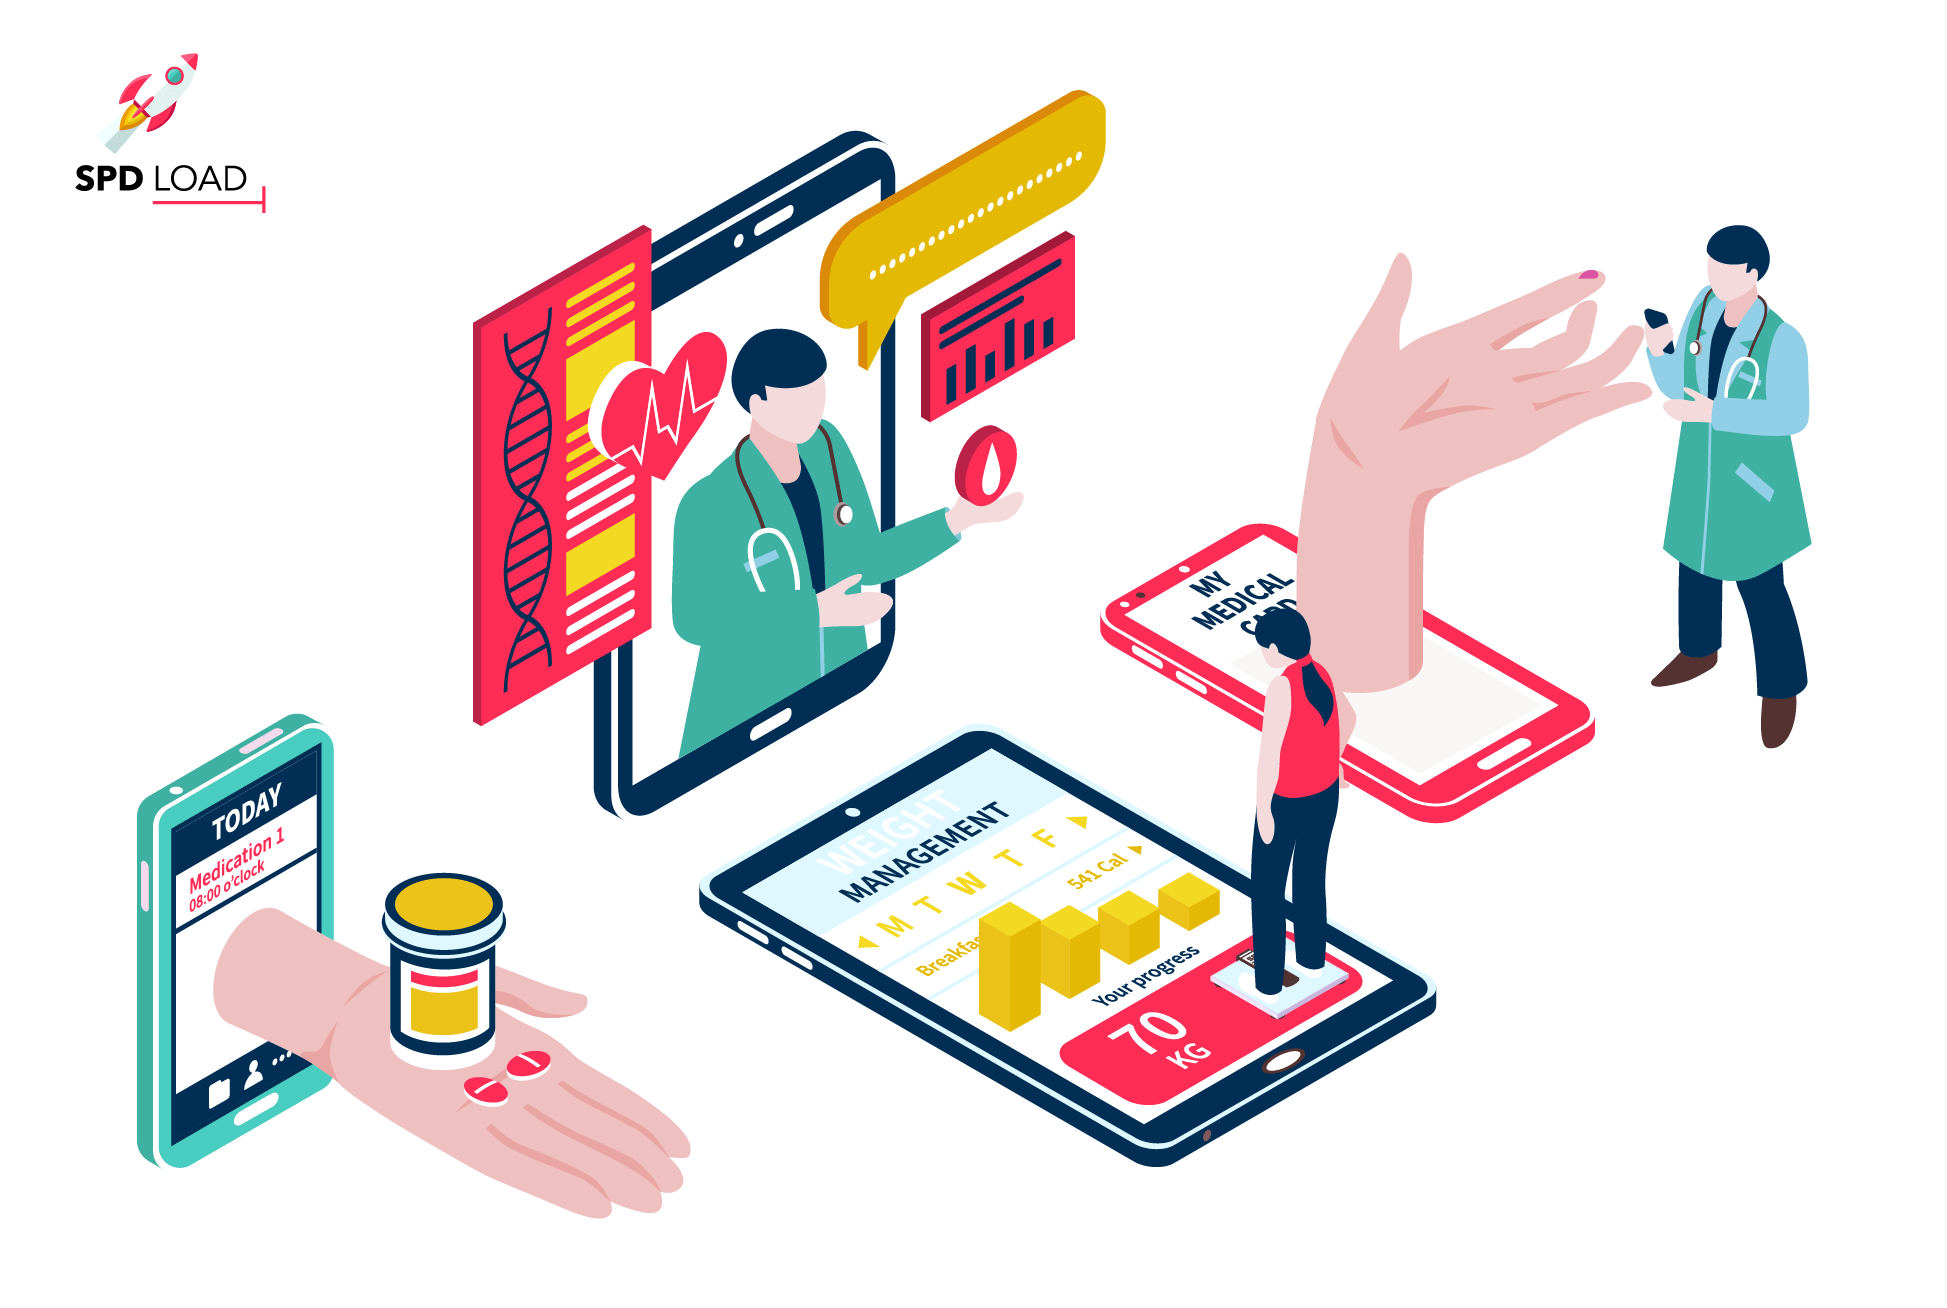 SpdLoad prepared a deep guide for founders from hospitals and healthcare professionals about application development from scratch.